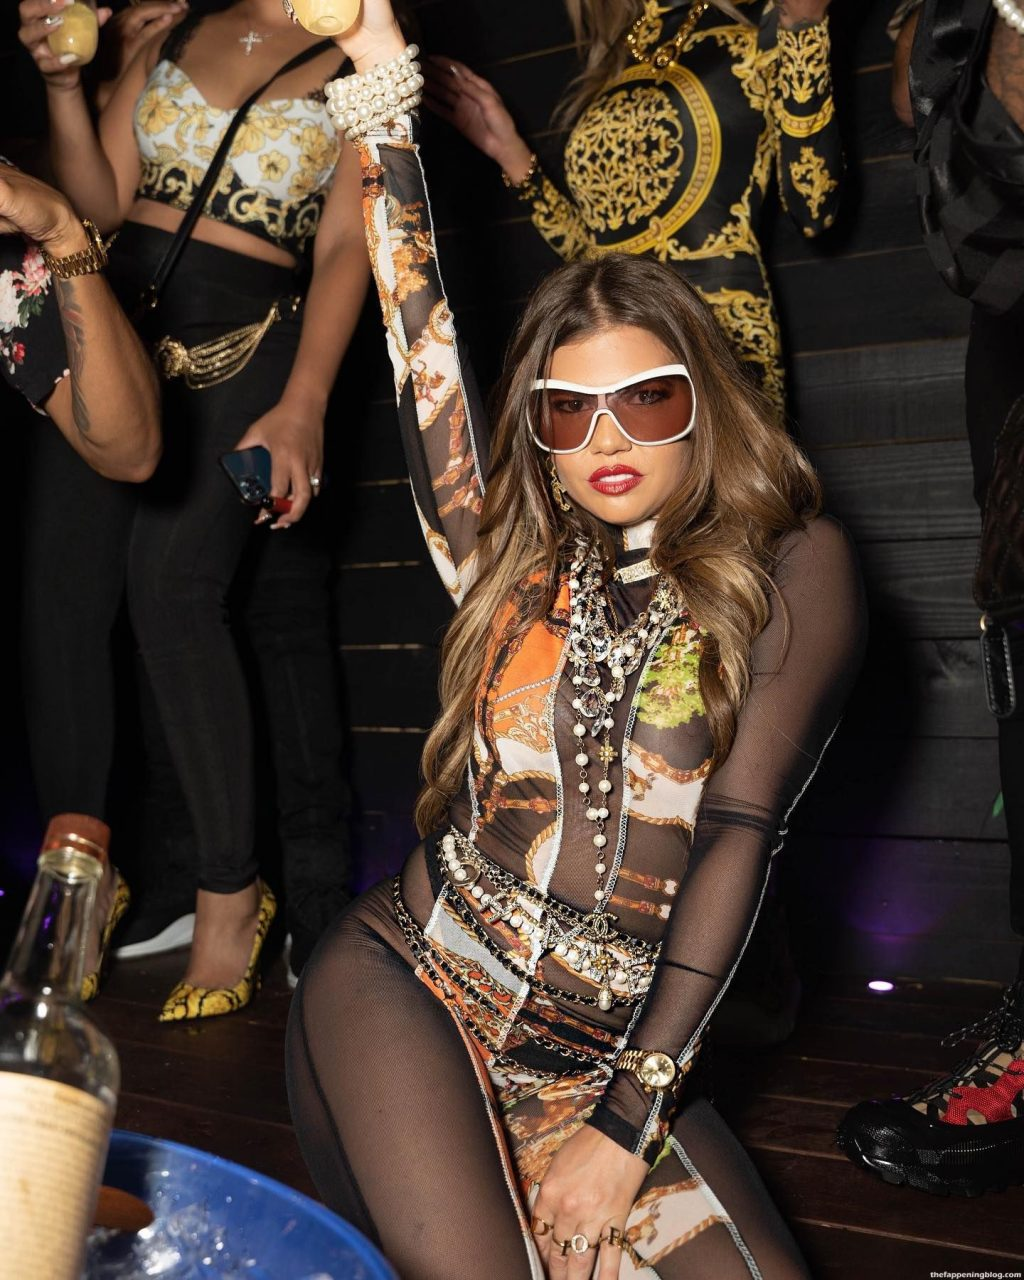 Chanel West Coast Flashes Her Nude Tits at the Club (9 Photos)